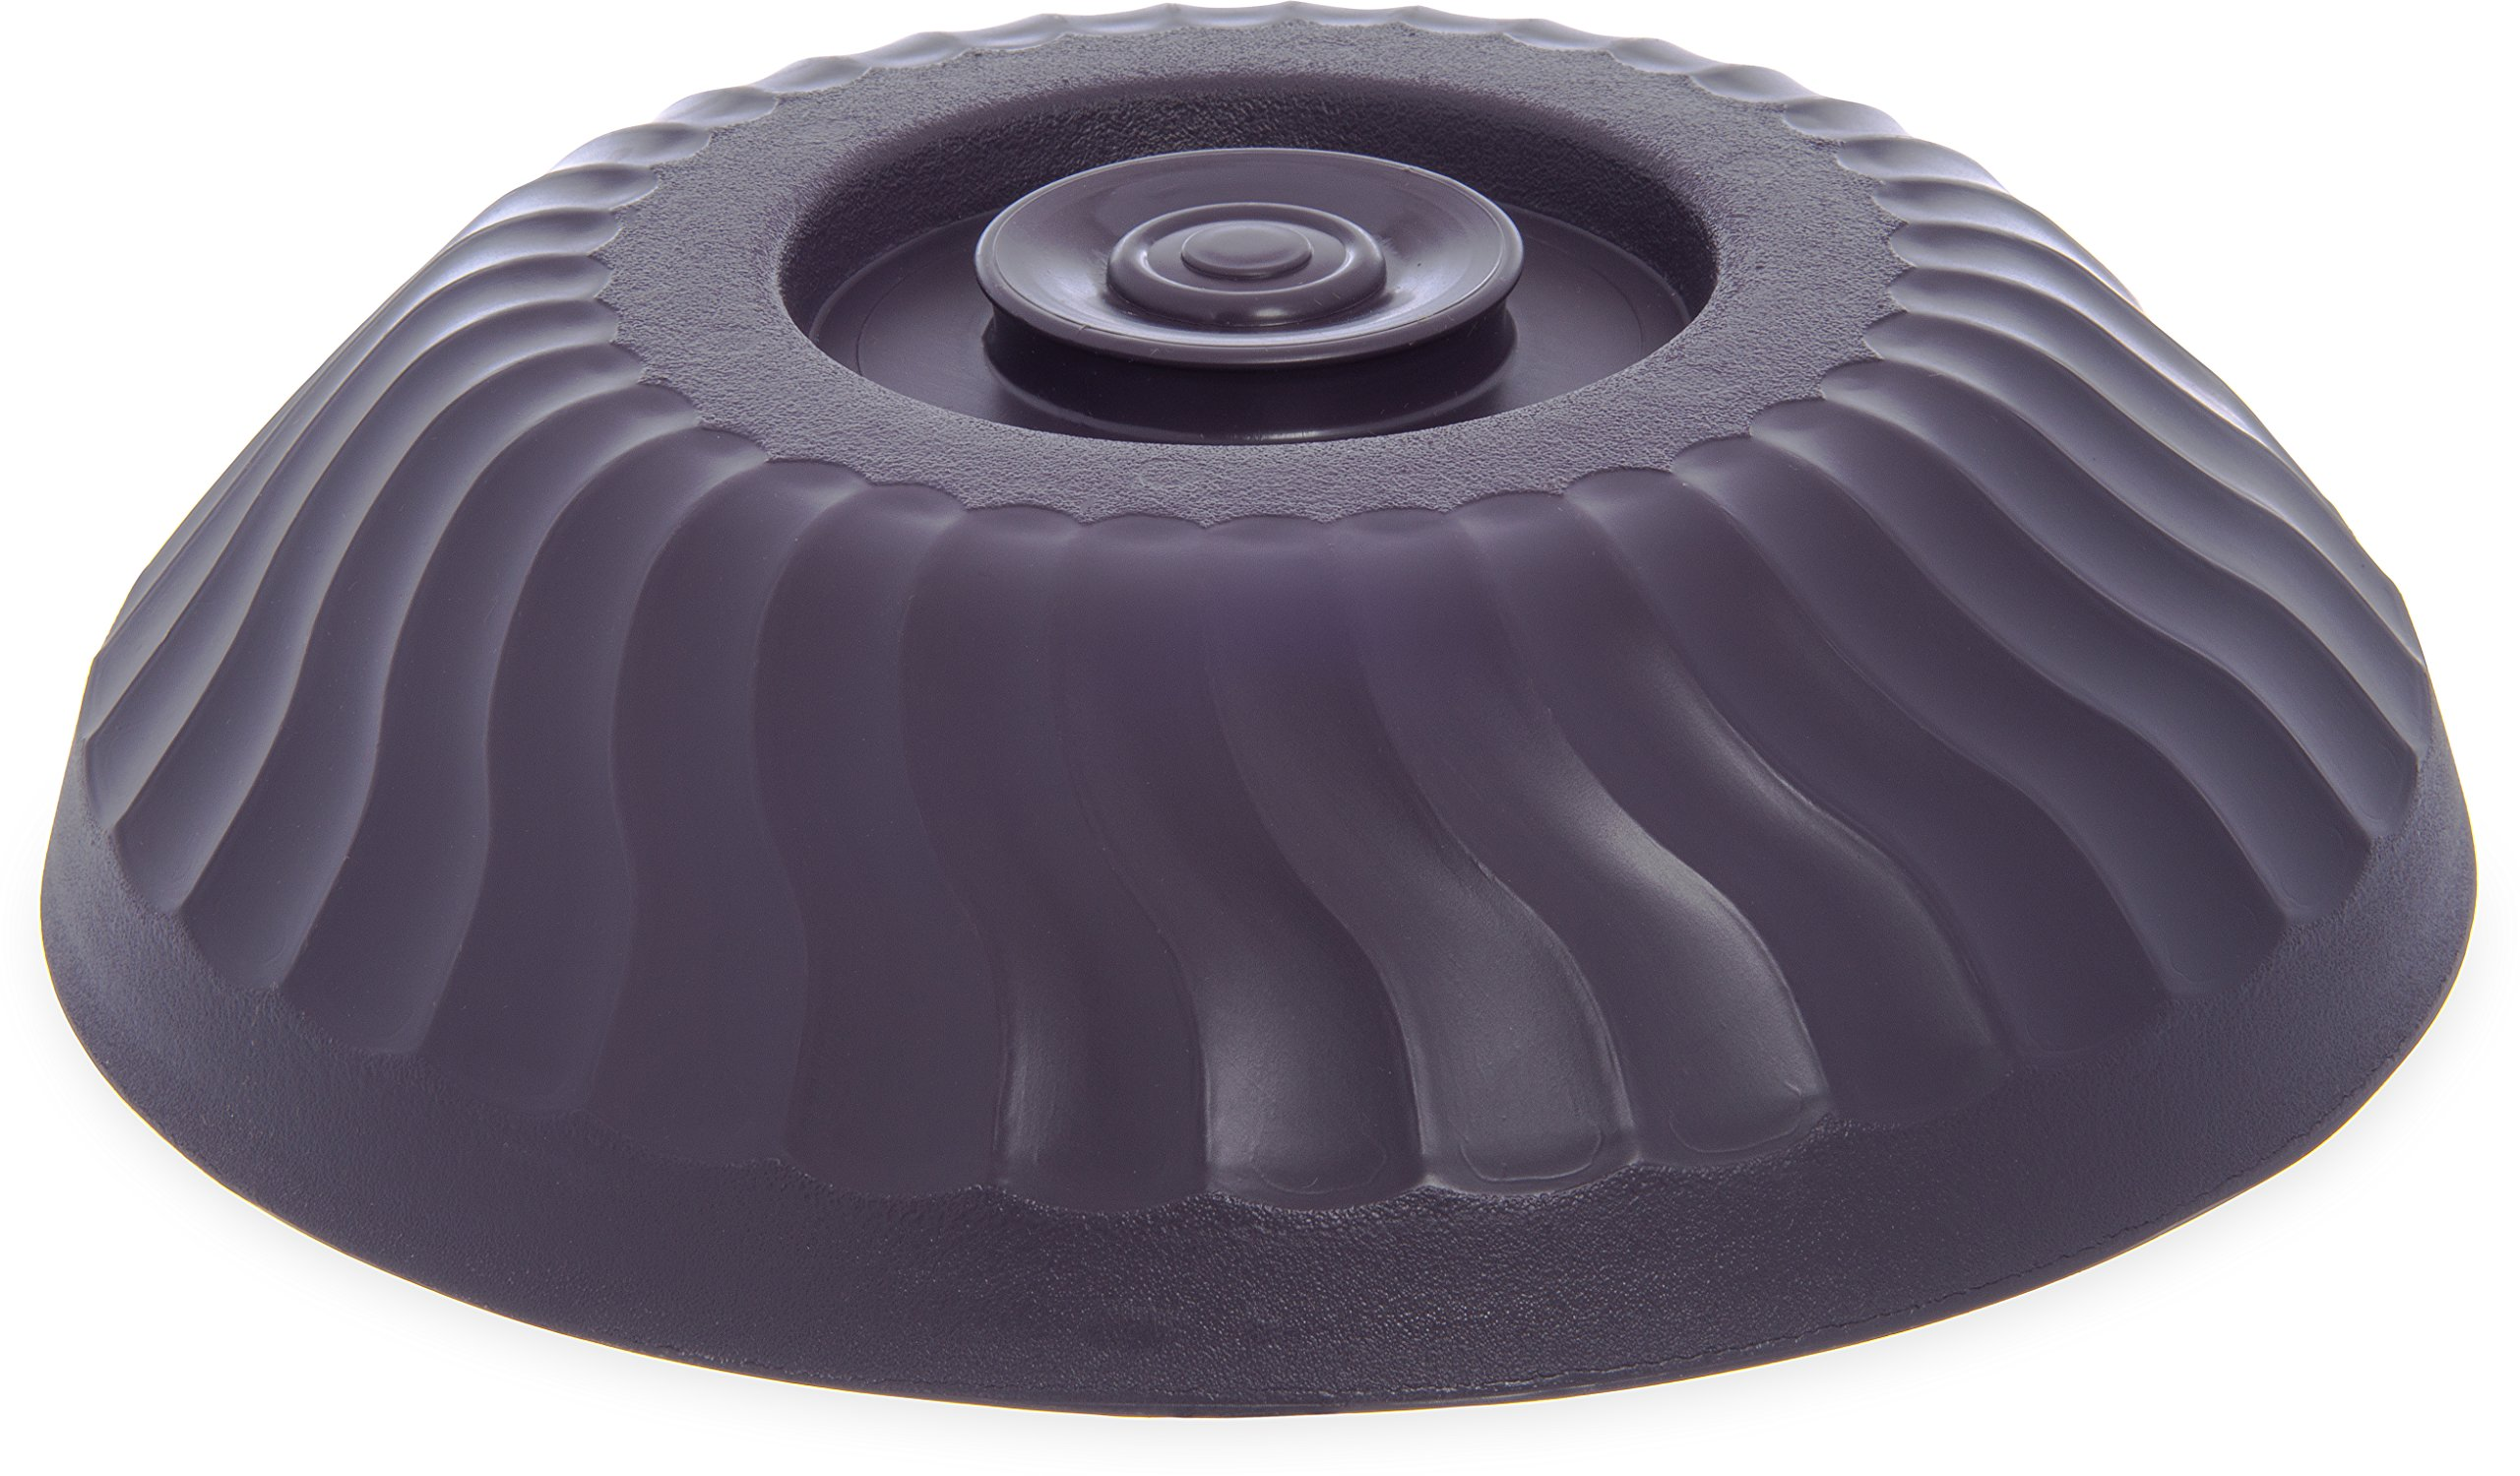 Dinex DX340068 Turnbury Insulated Plate Dome Cover, 2.88'' Height, 10'' Width, 10'' Length, Urethane Foam, Napoli Plum (Pack of 12)